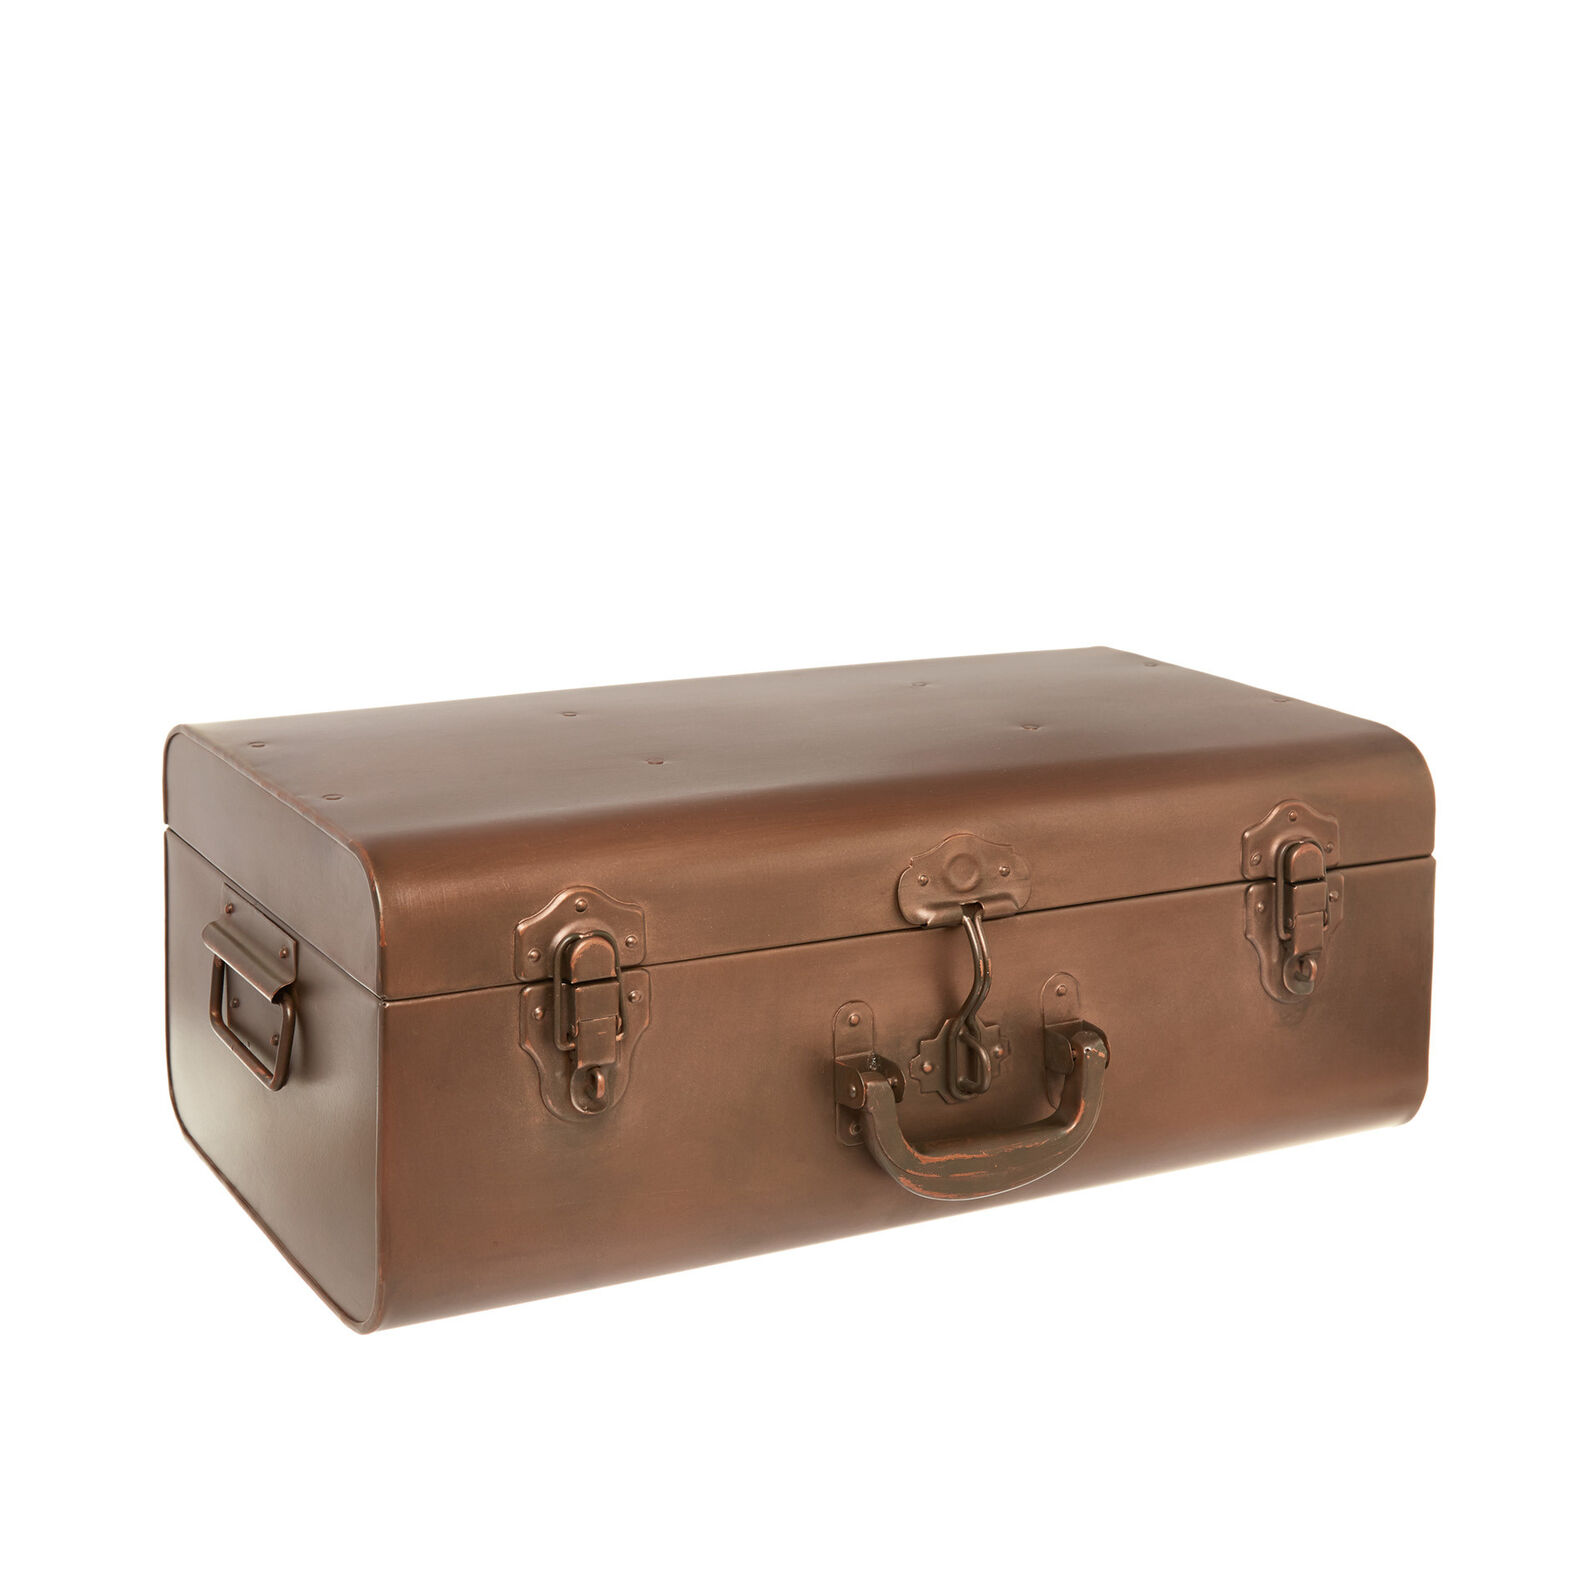 Decorative iron suitcase